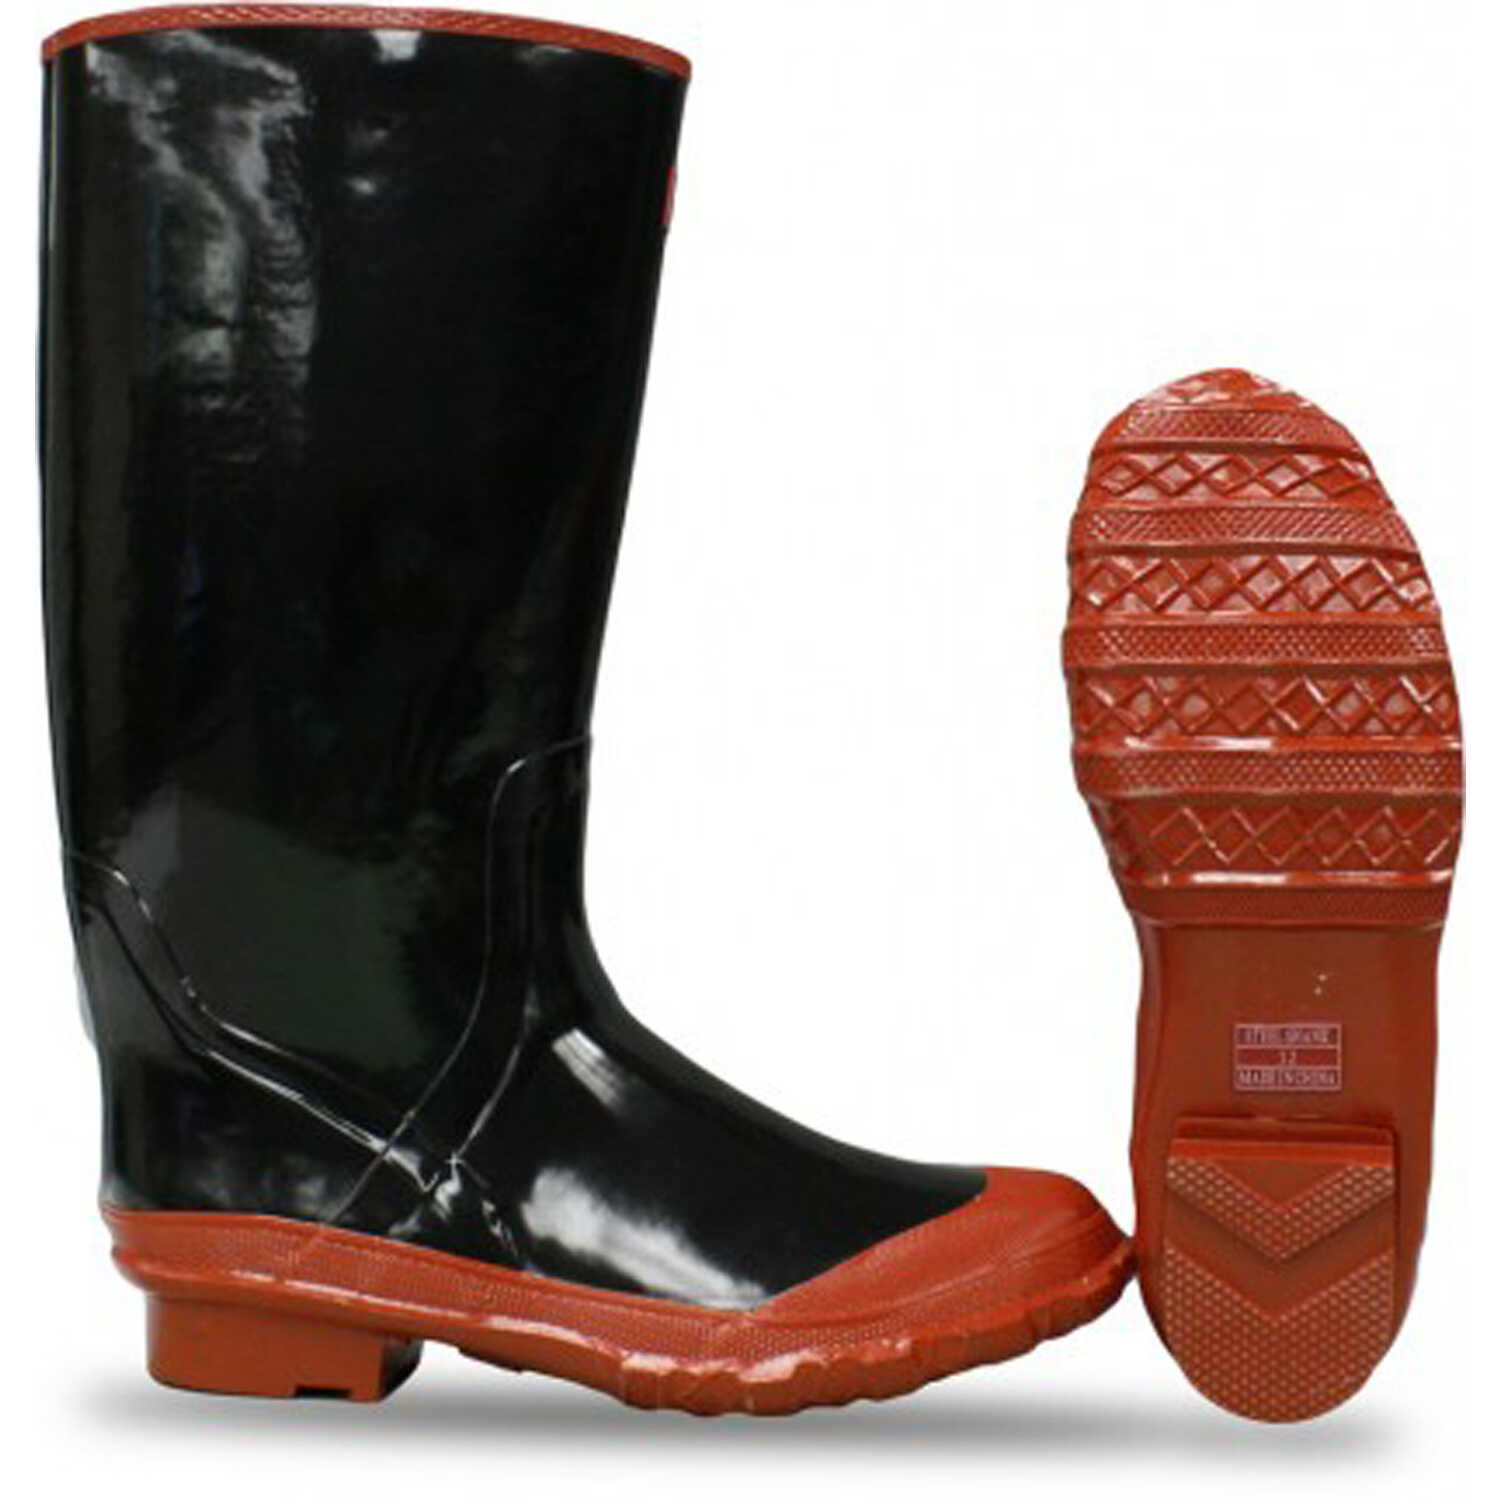 Boss  Black/Red  Rubber  Boots  13 US